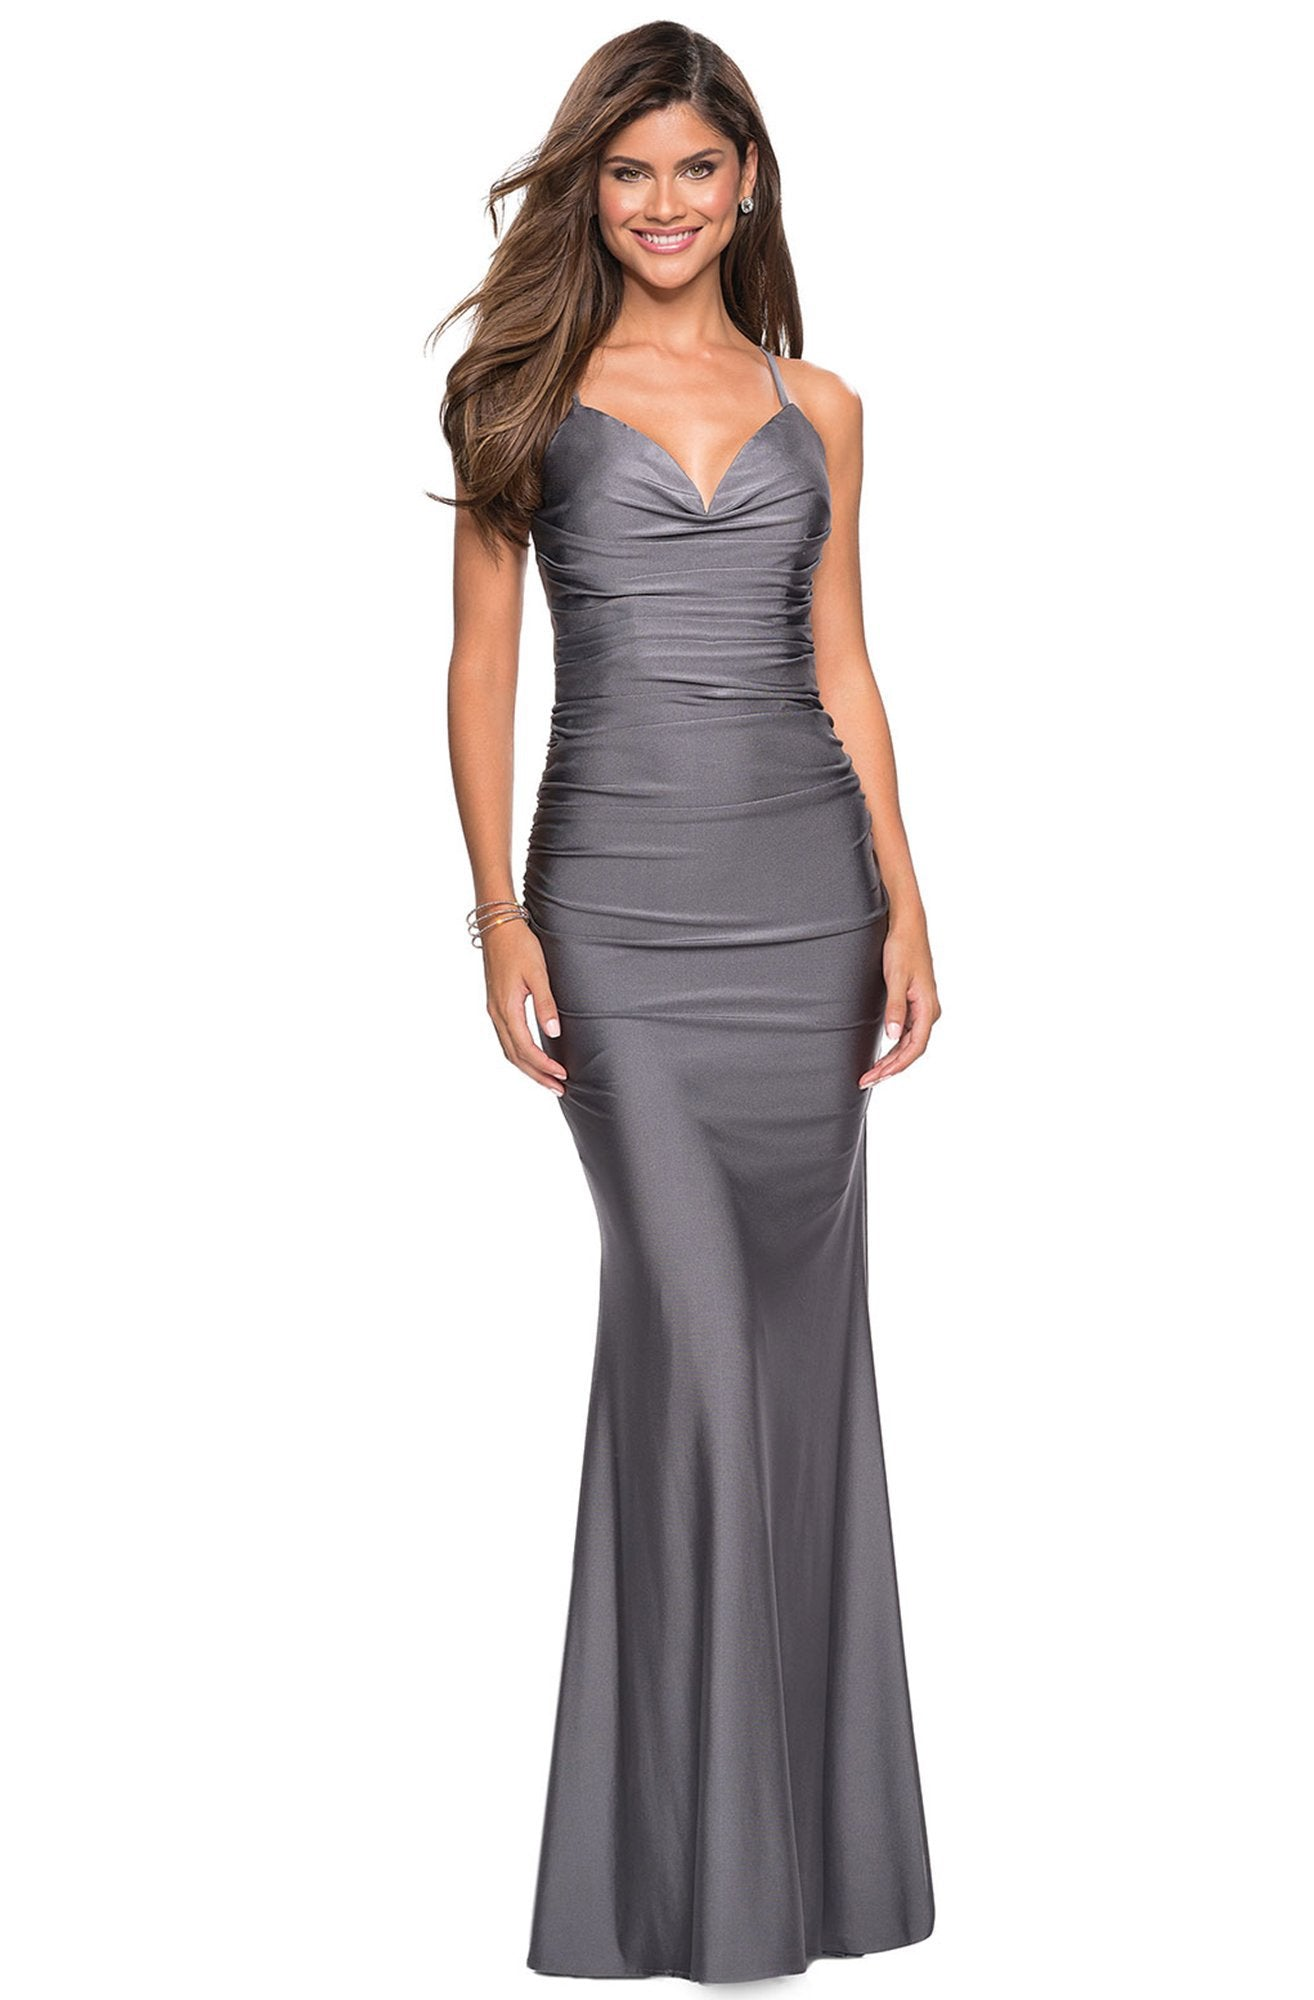 La Femme - Ruched Sweetheart Trumpet Evening Gown 27501 In Gray